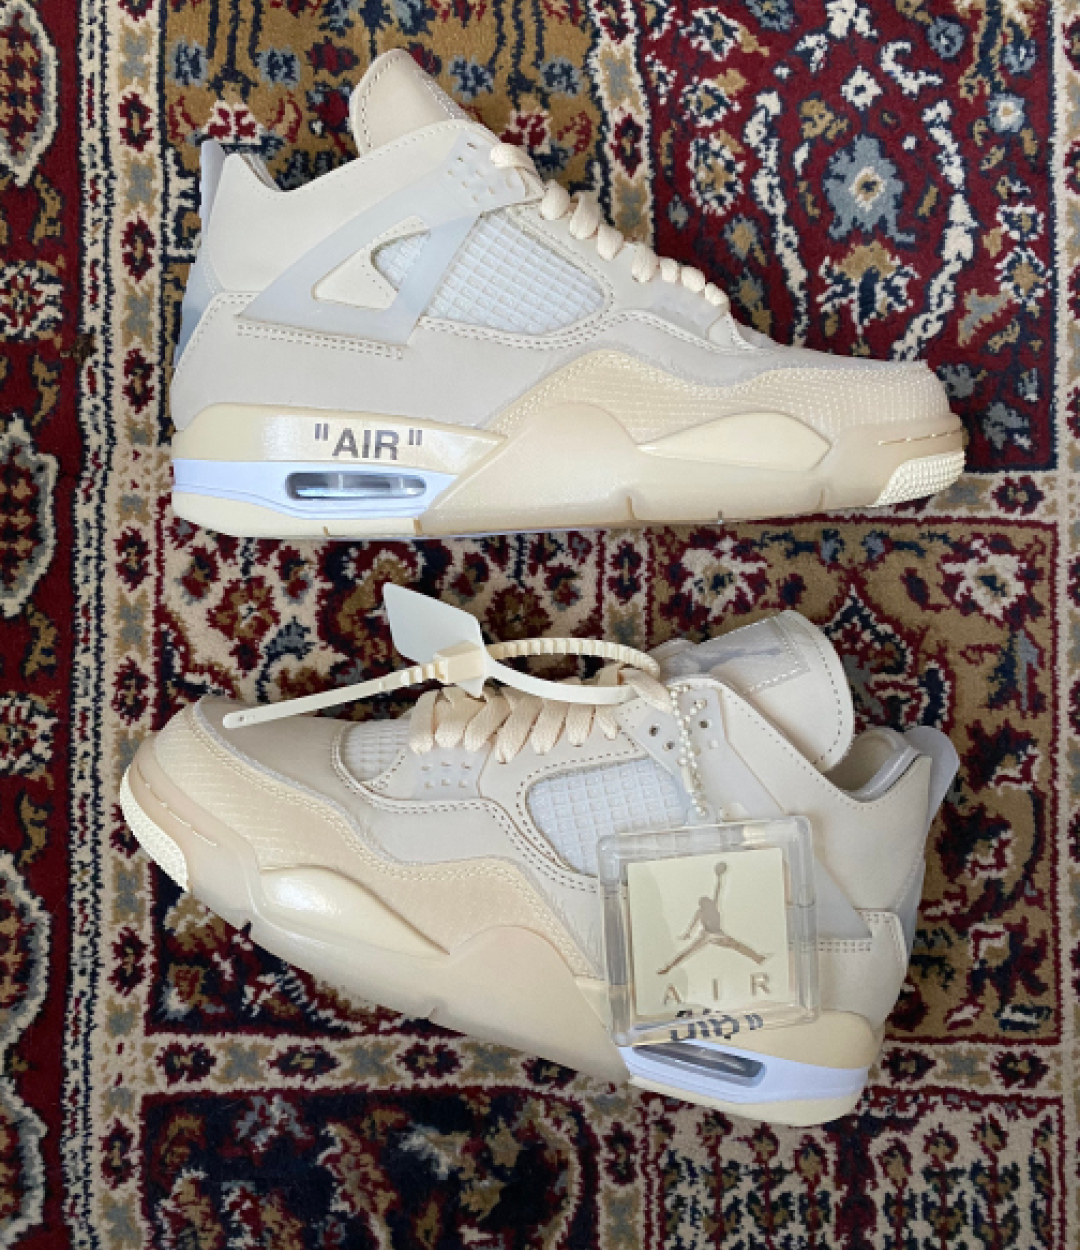 Off White x Jordan Air Jordan 4 'Sail'